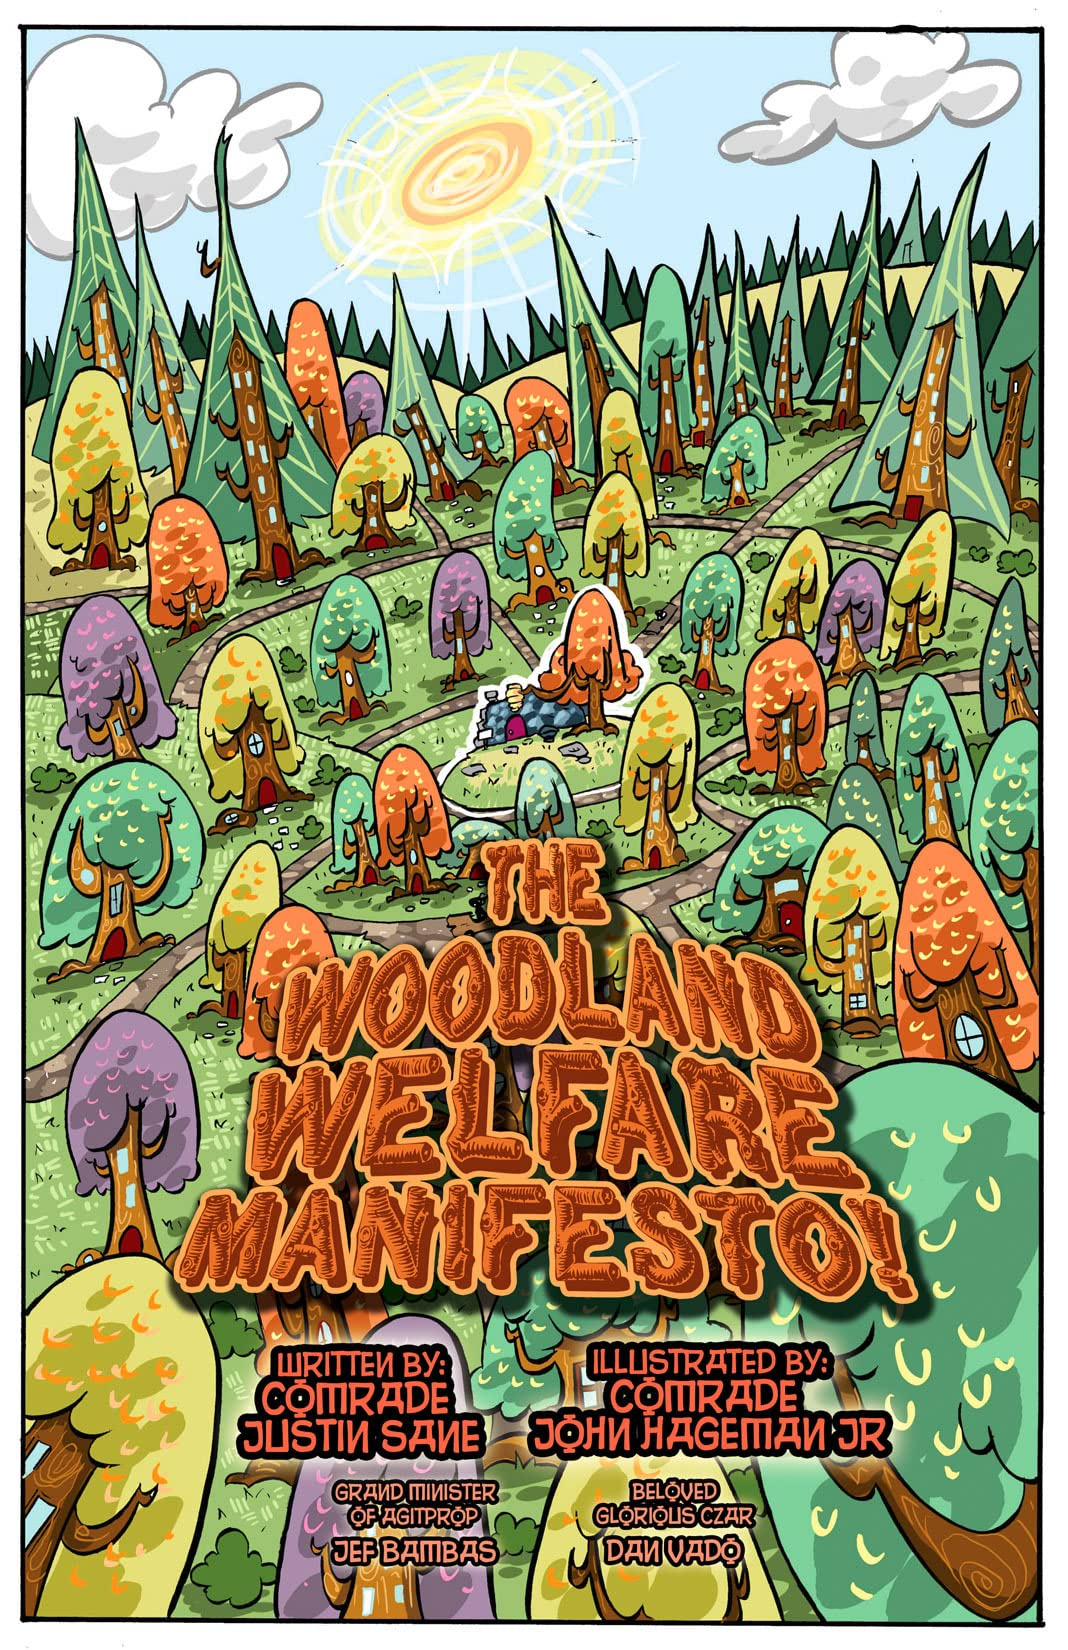 Woodland Welfare Manifesto